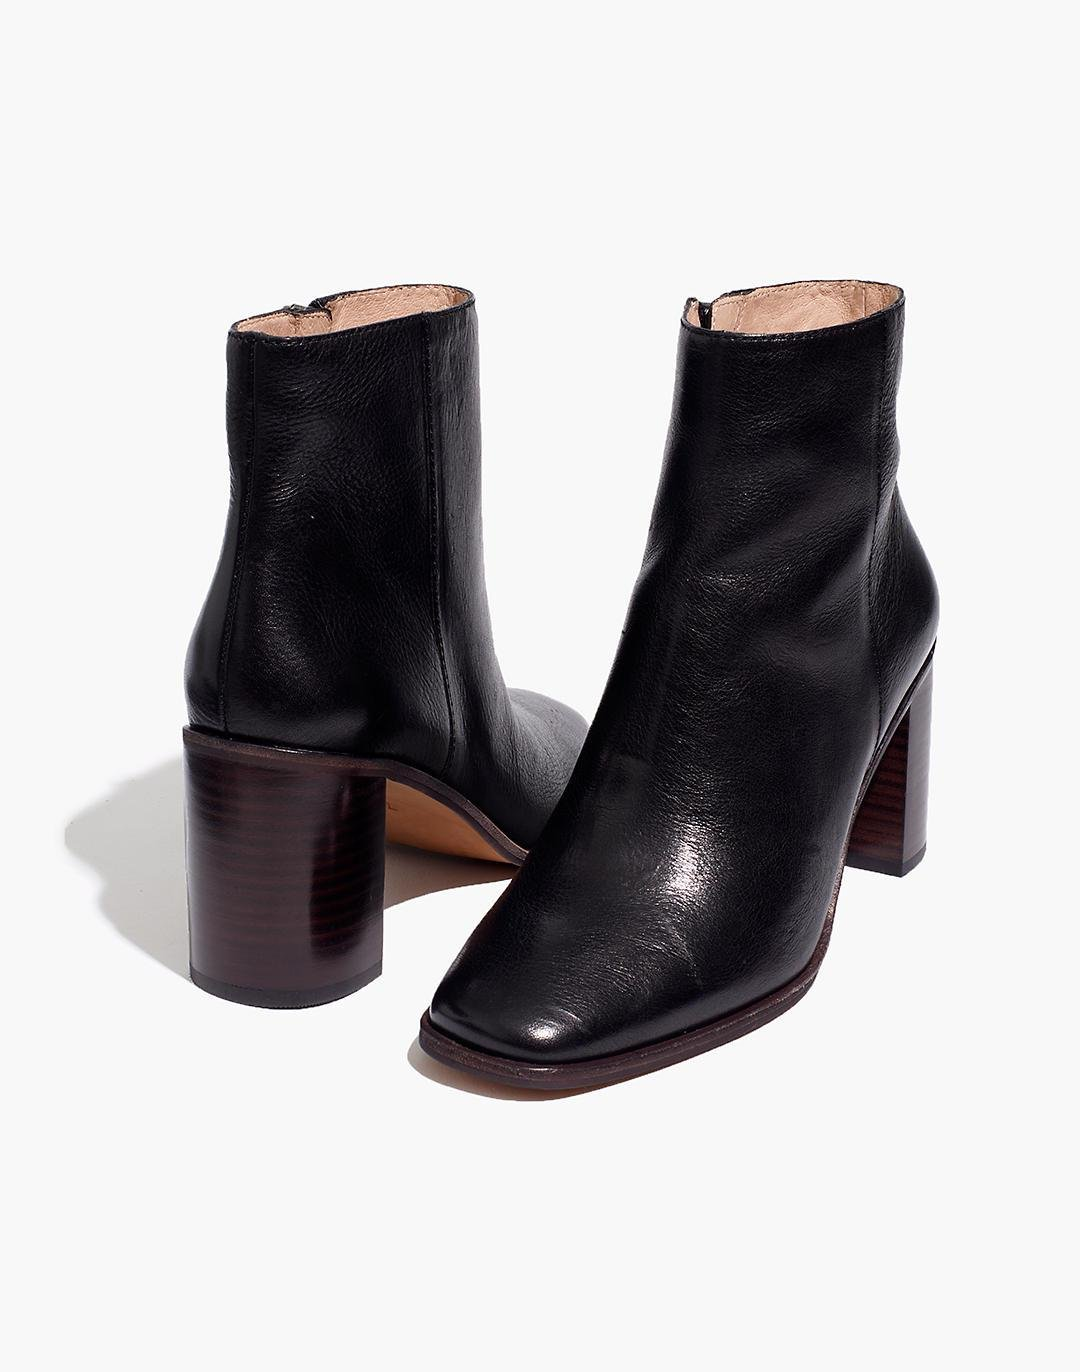 The Greer Boot in Leather